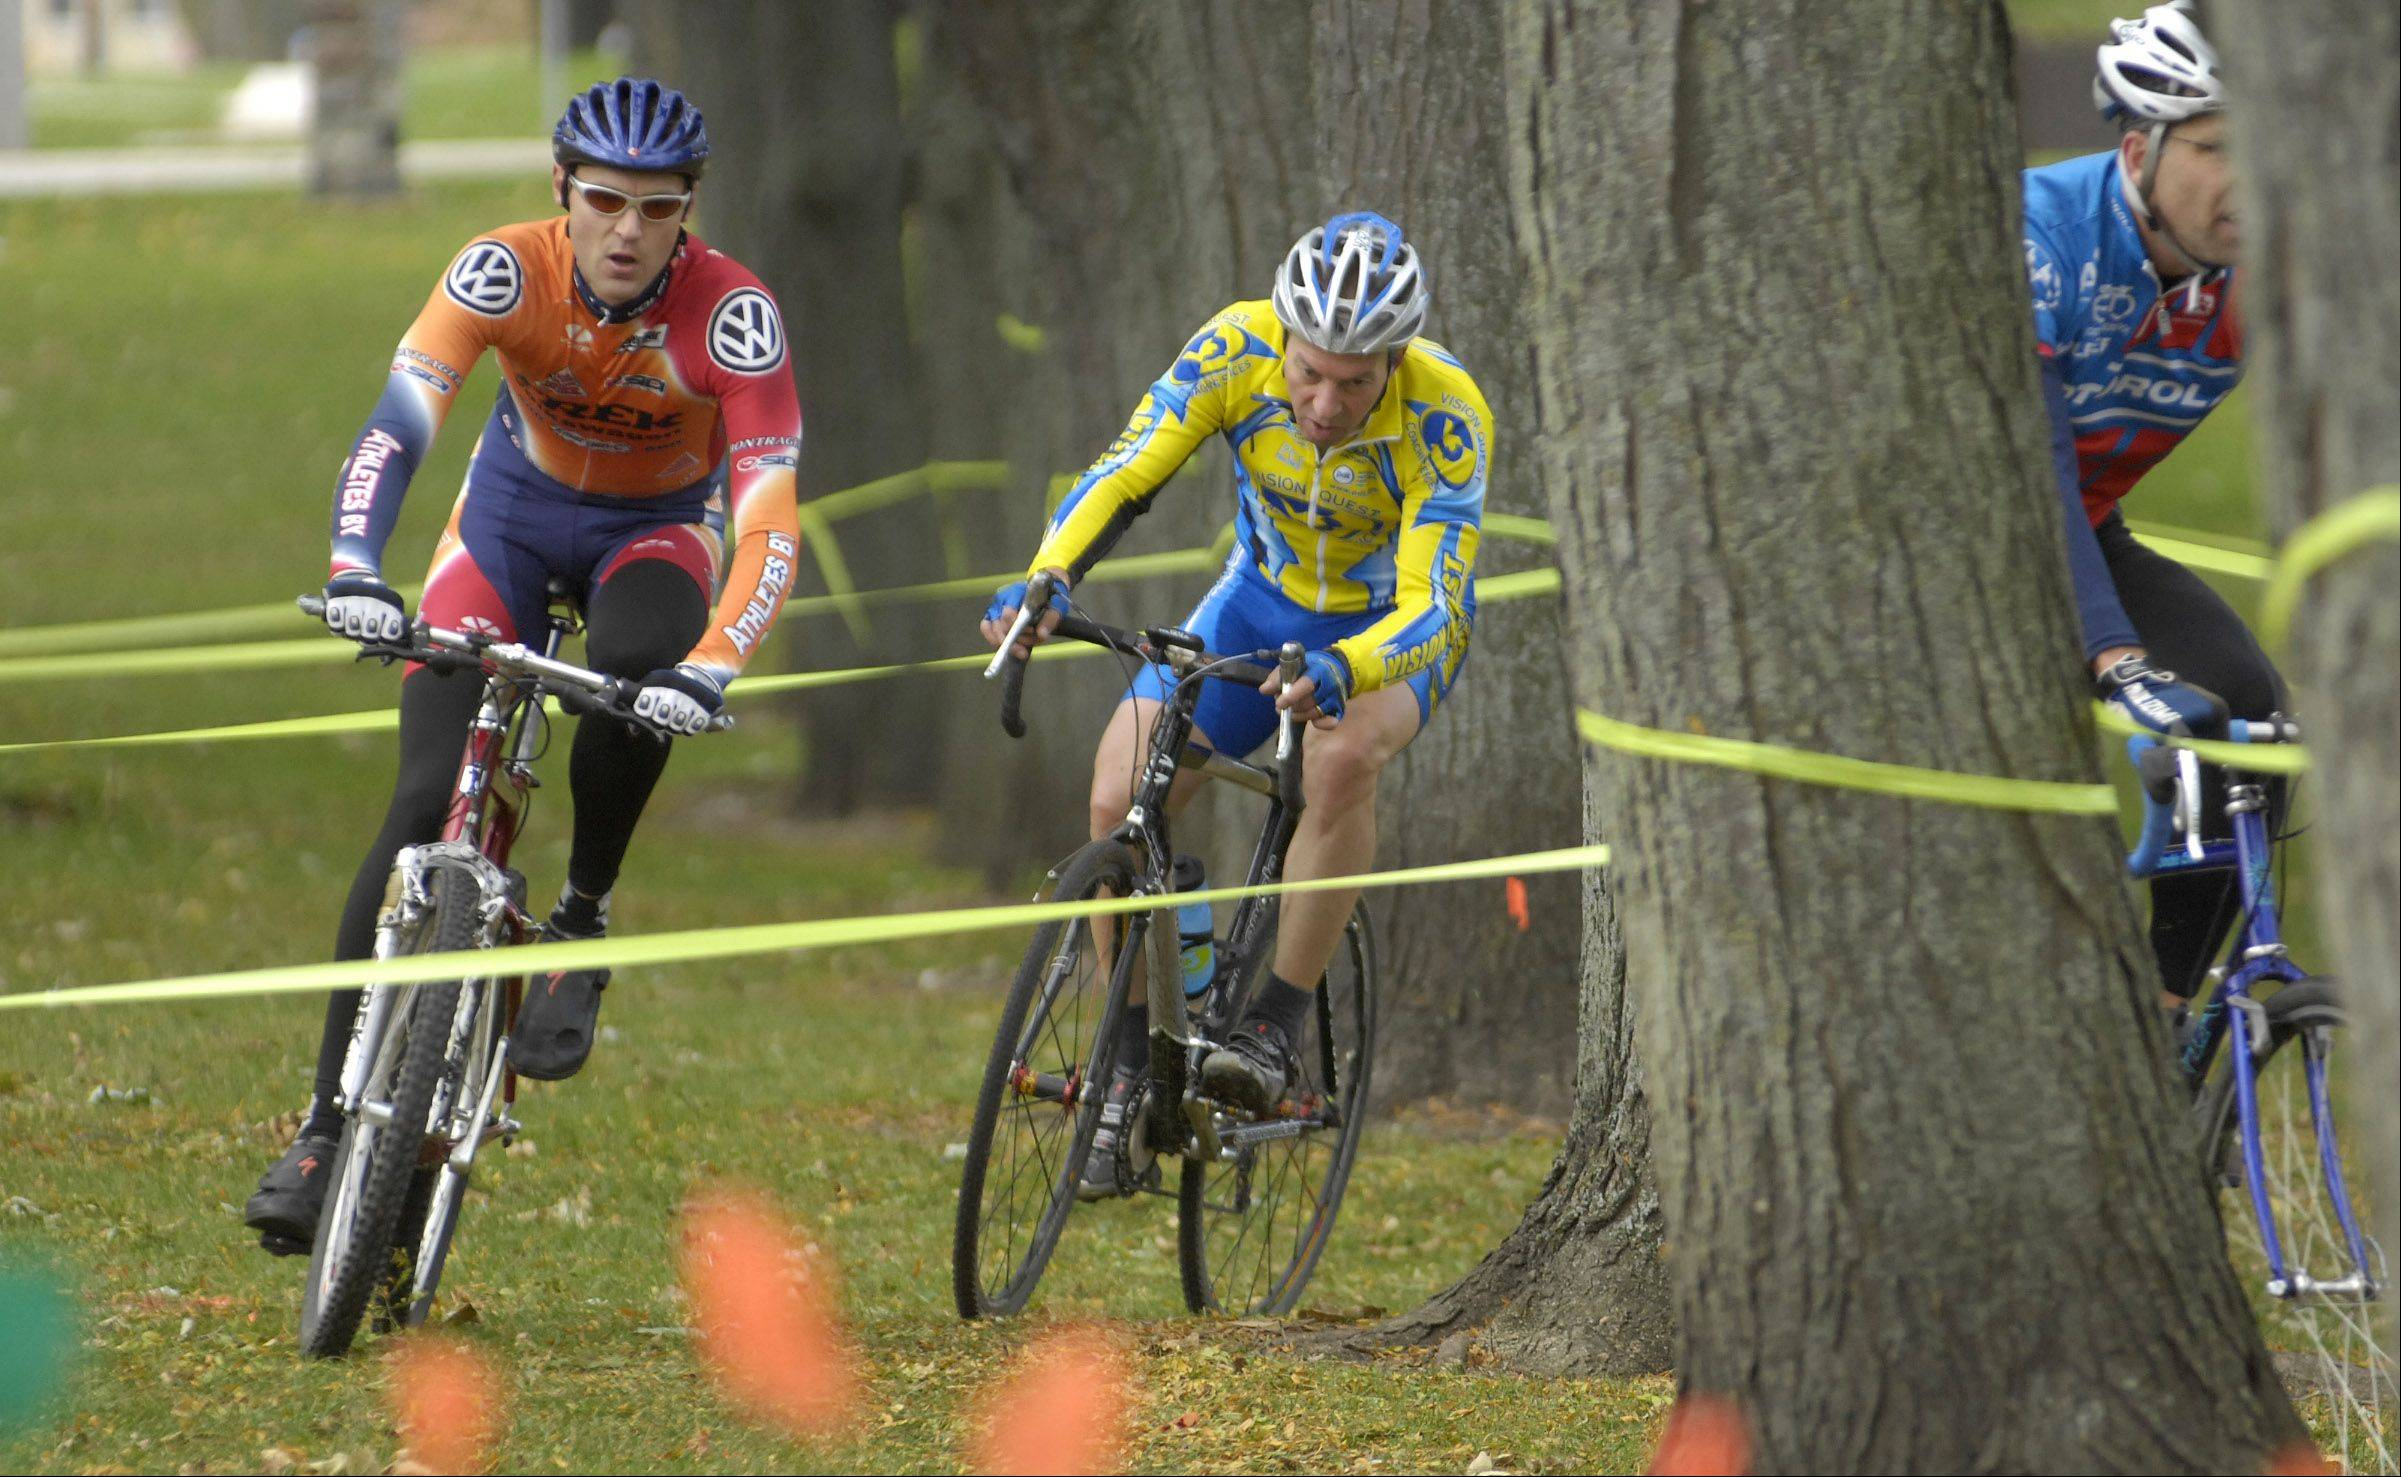 Competitors take part in the 2006 Chicago Cyclocross Cup bicycle race in Carpenter Park. Carpentersville leaders recently approved a master plan for the park in hopes of improving it and attracting more users.